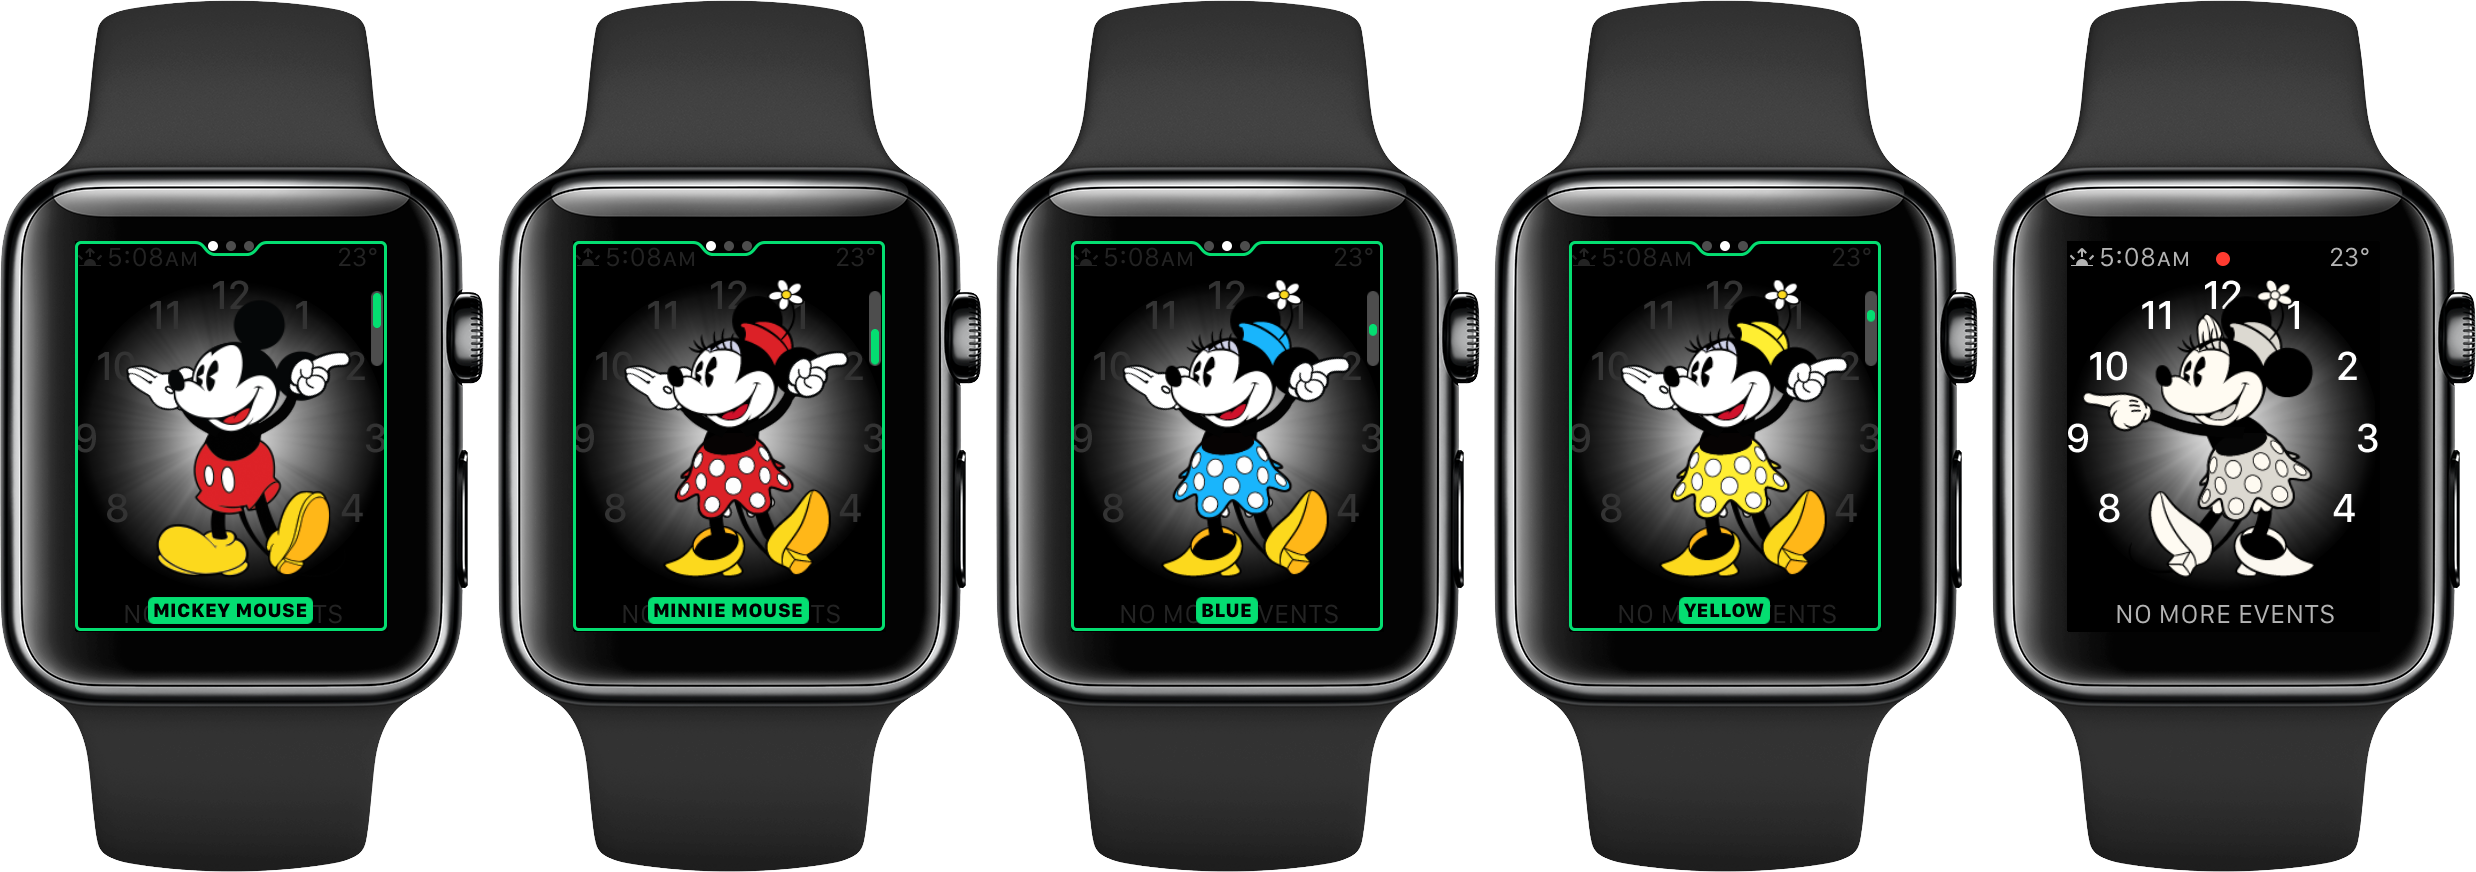 watchOS 3 faces Minnie Mouse space gray Apple Watch screenshot 001